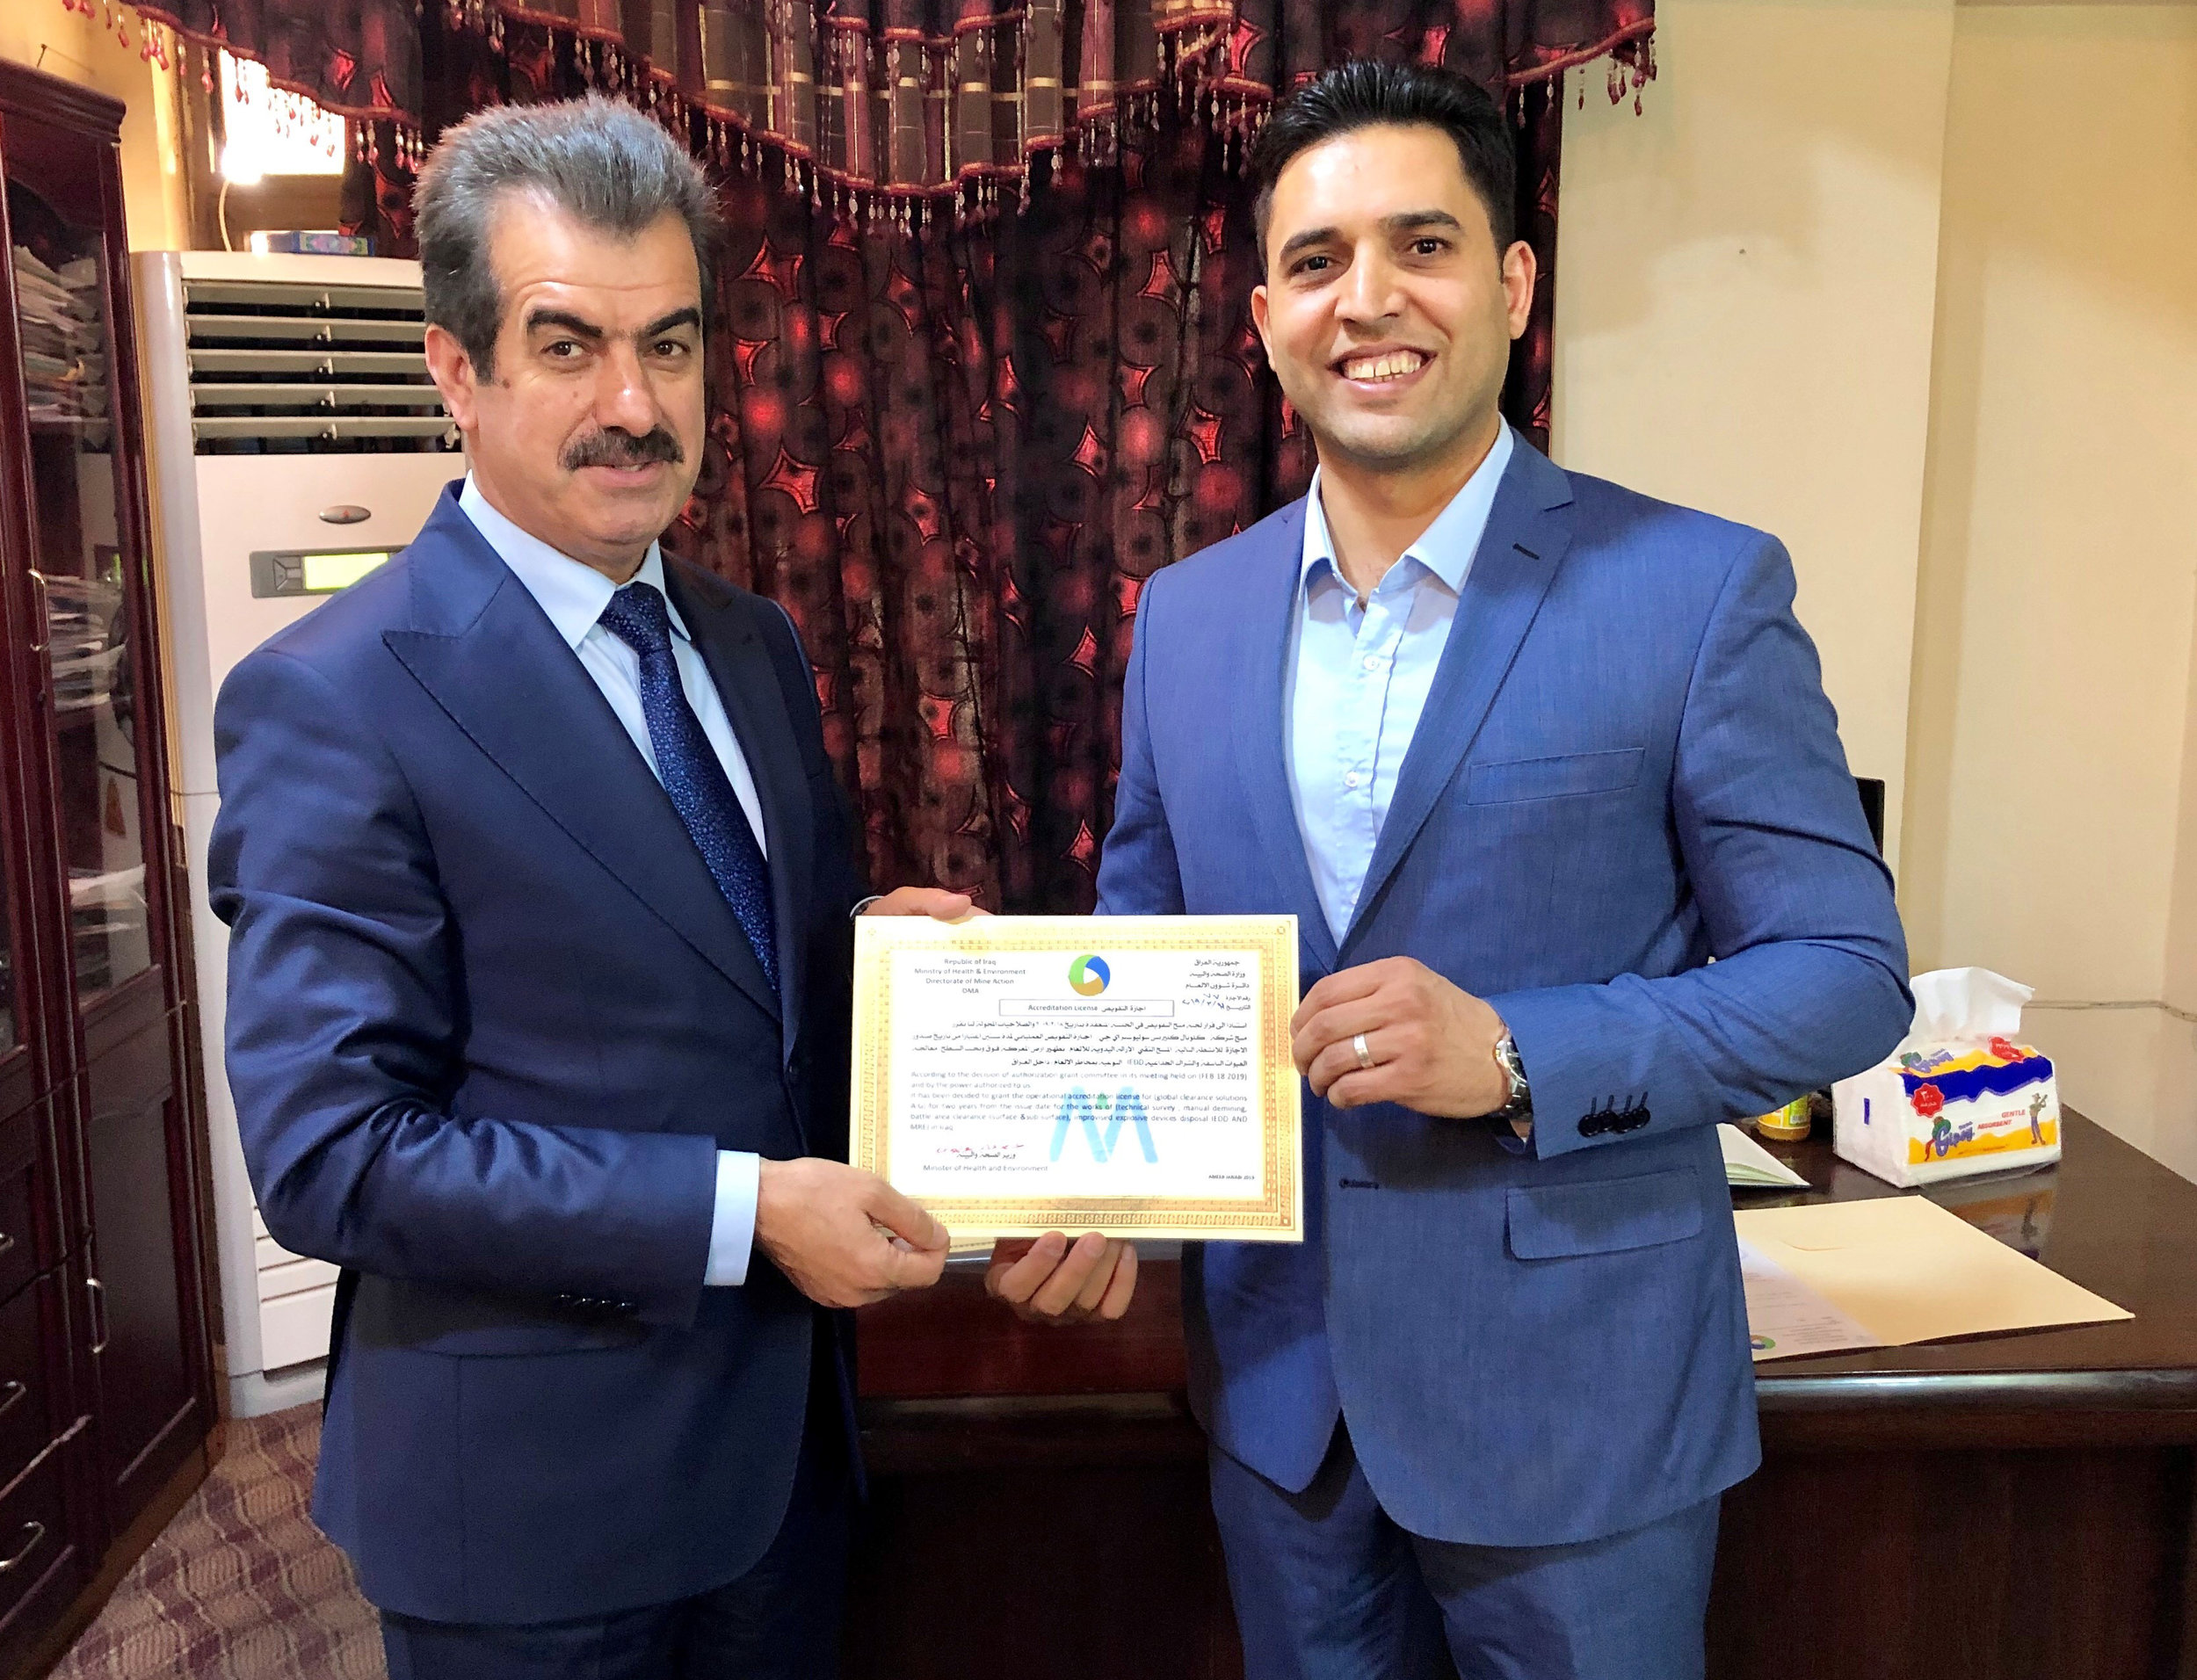 Dr Kamaran Ali Hassan , Deputy of the Minister of Health and Environment presents Wissam Allamy, GCS Iraq Branch Manager with DMA Accreditation